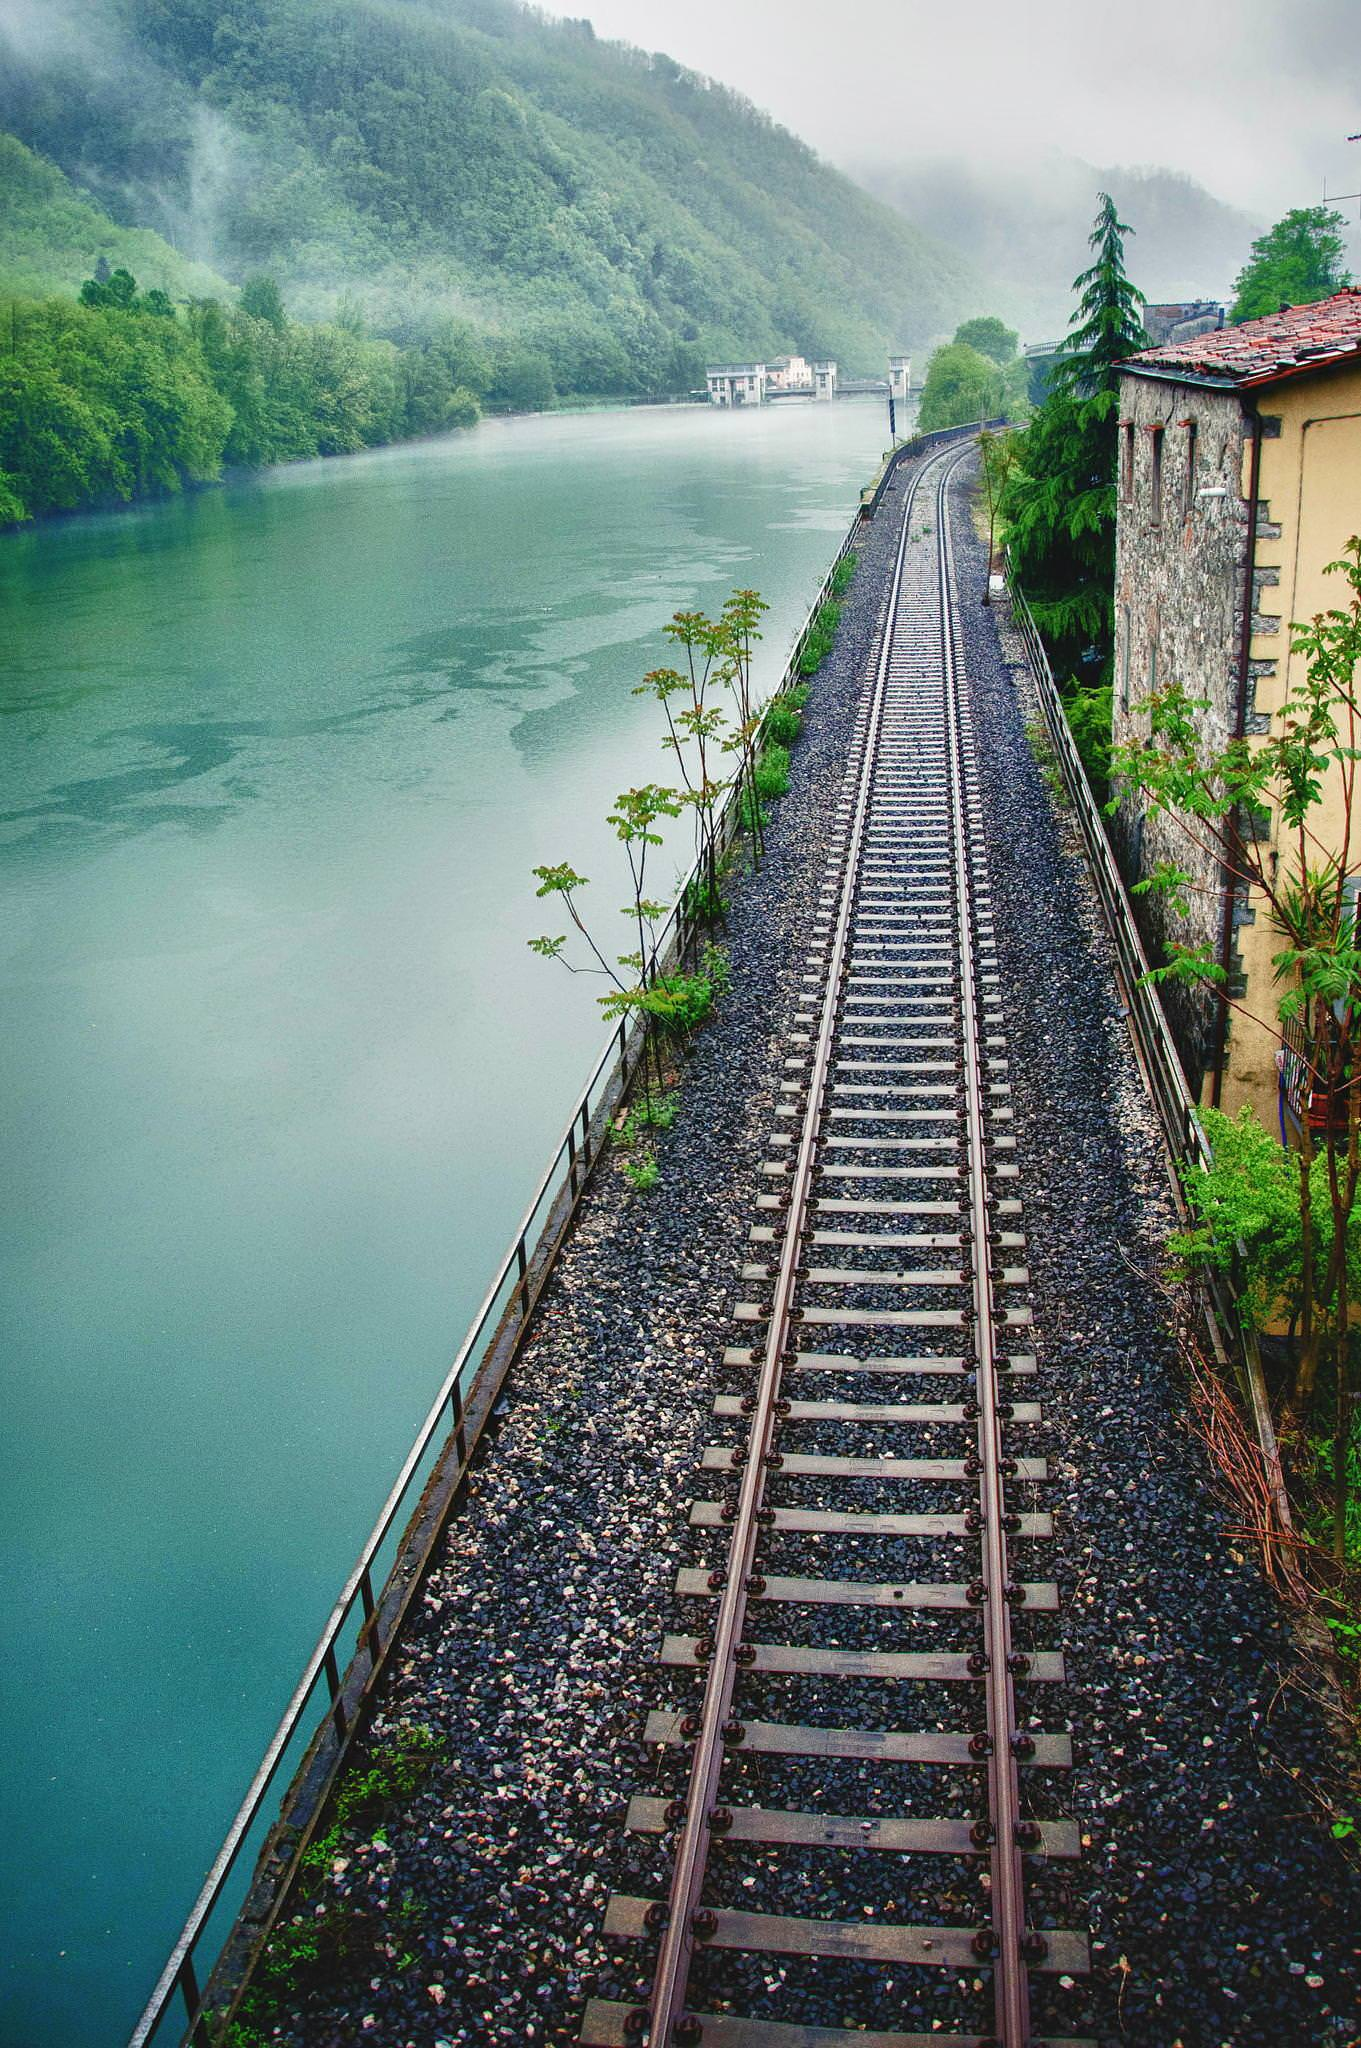 railway river travel nature wood bridge guidance trip trees house